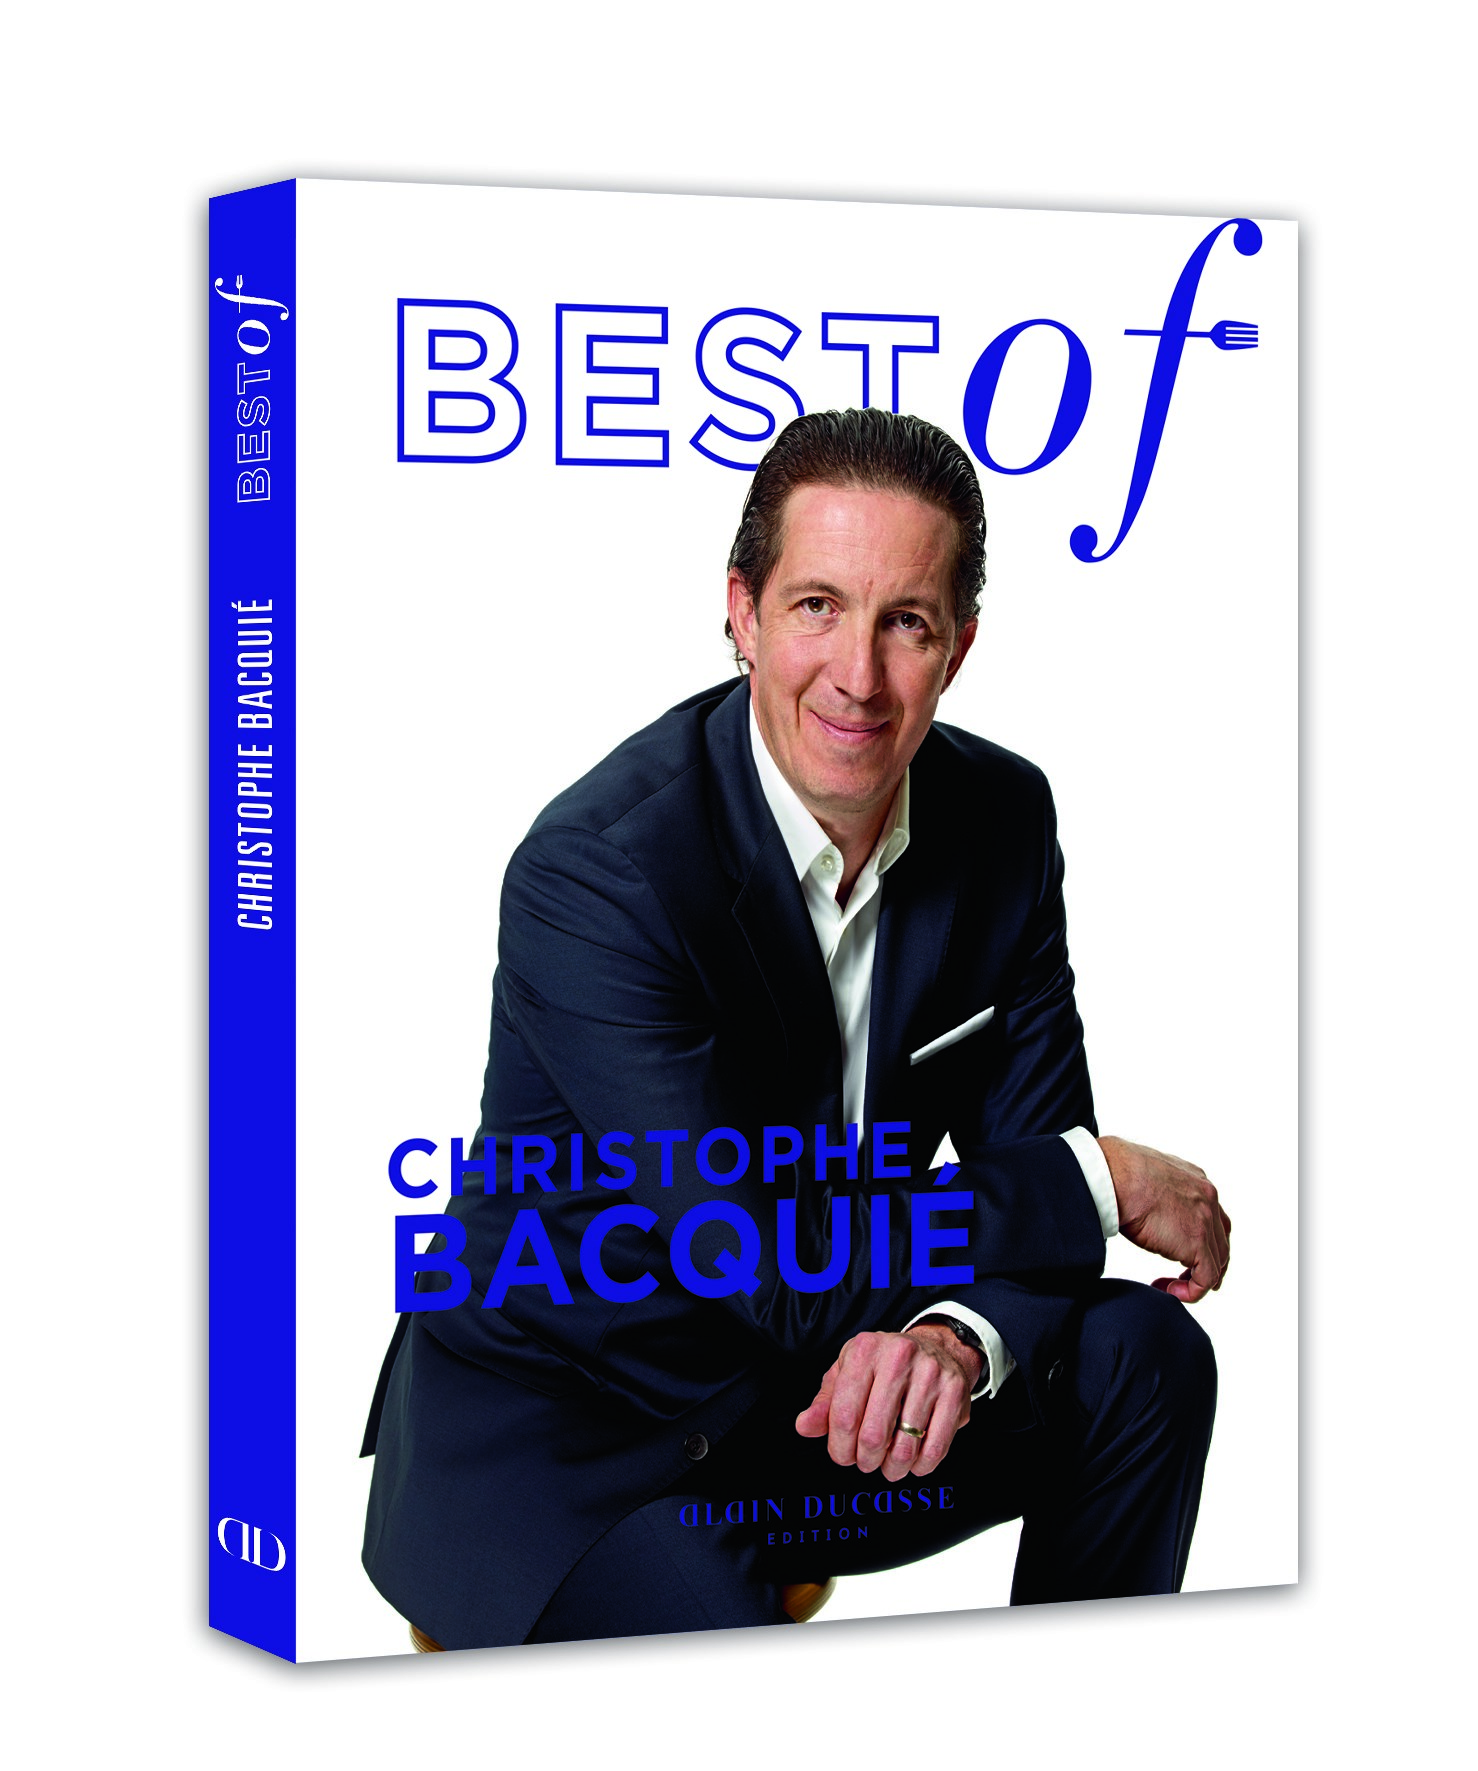 original_Couverture-Best-Of-Christophe-Bacquie---Credit-Matthieu-Cellard-et-Stephane-Bouriges.jpg